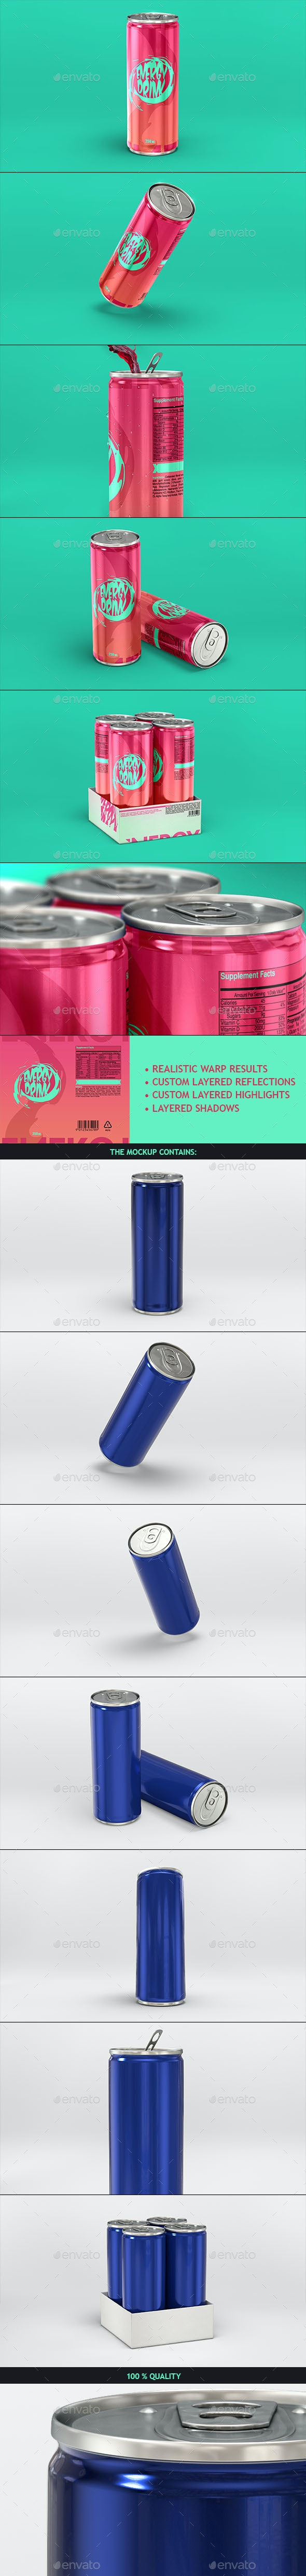 Energy Drink Soda Can Mockup - Food and Drink Packaging